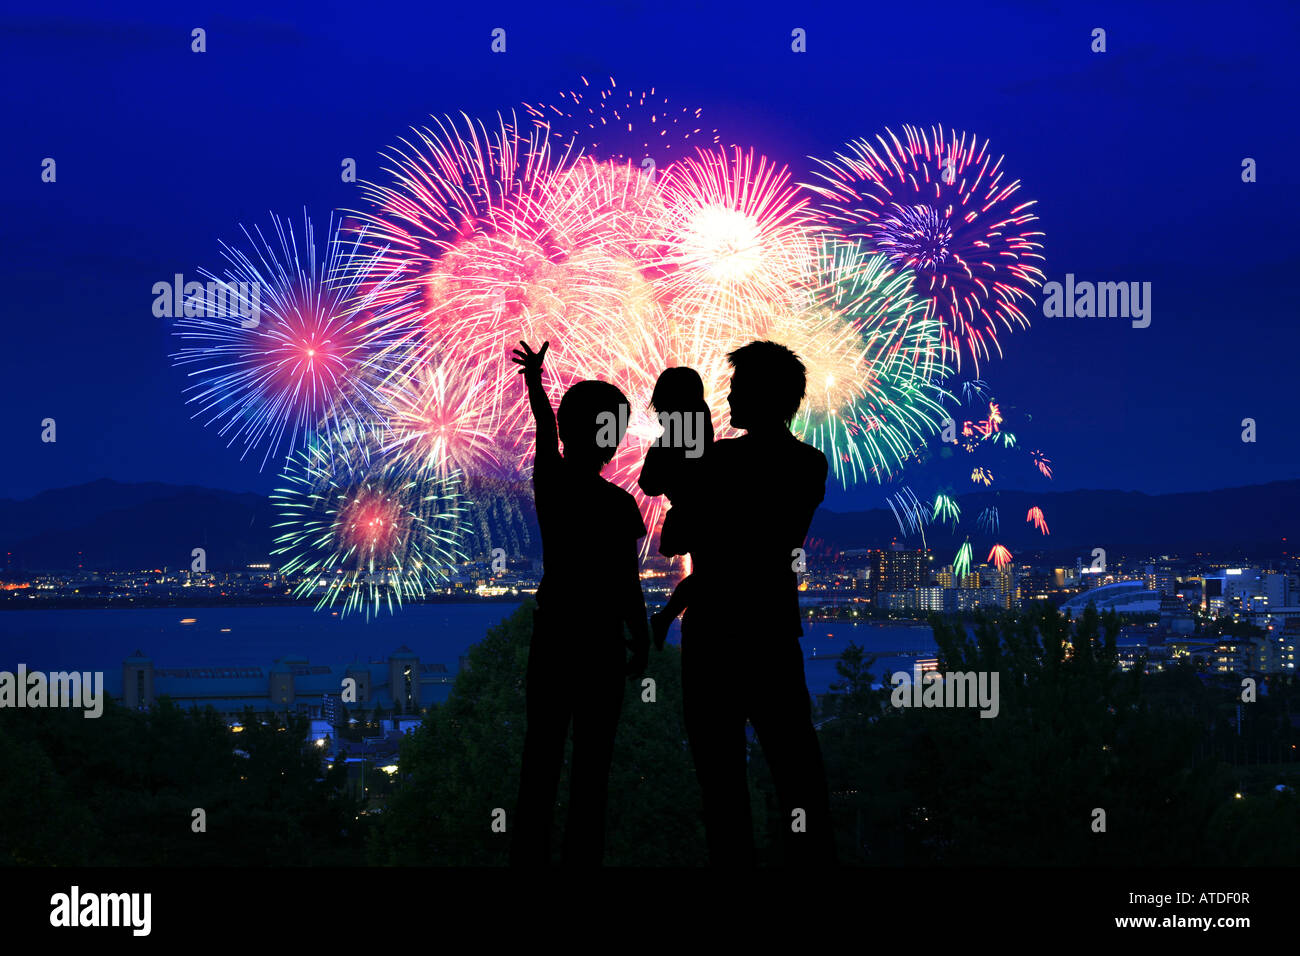 silhouette of family watching firework display stock photo: 16284022